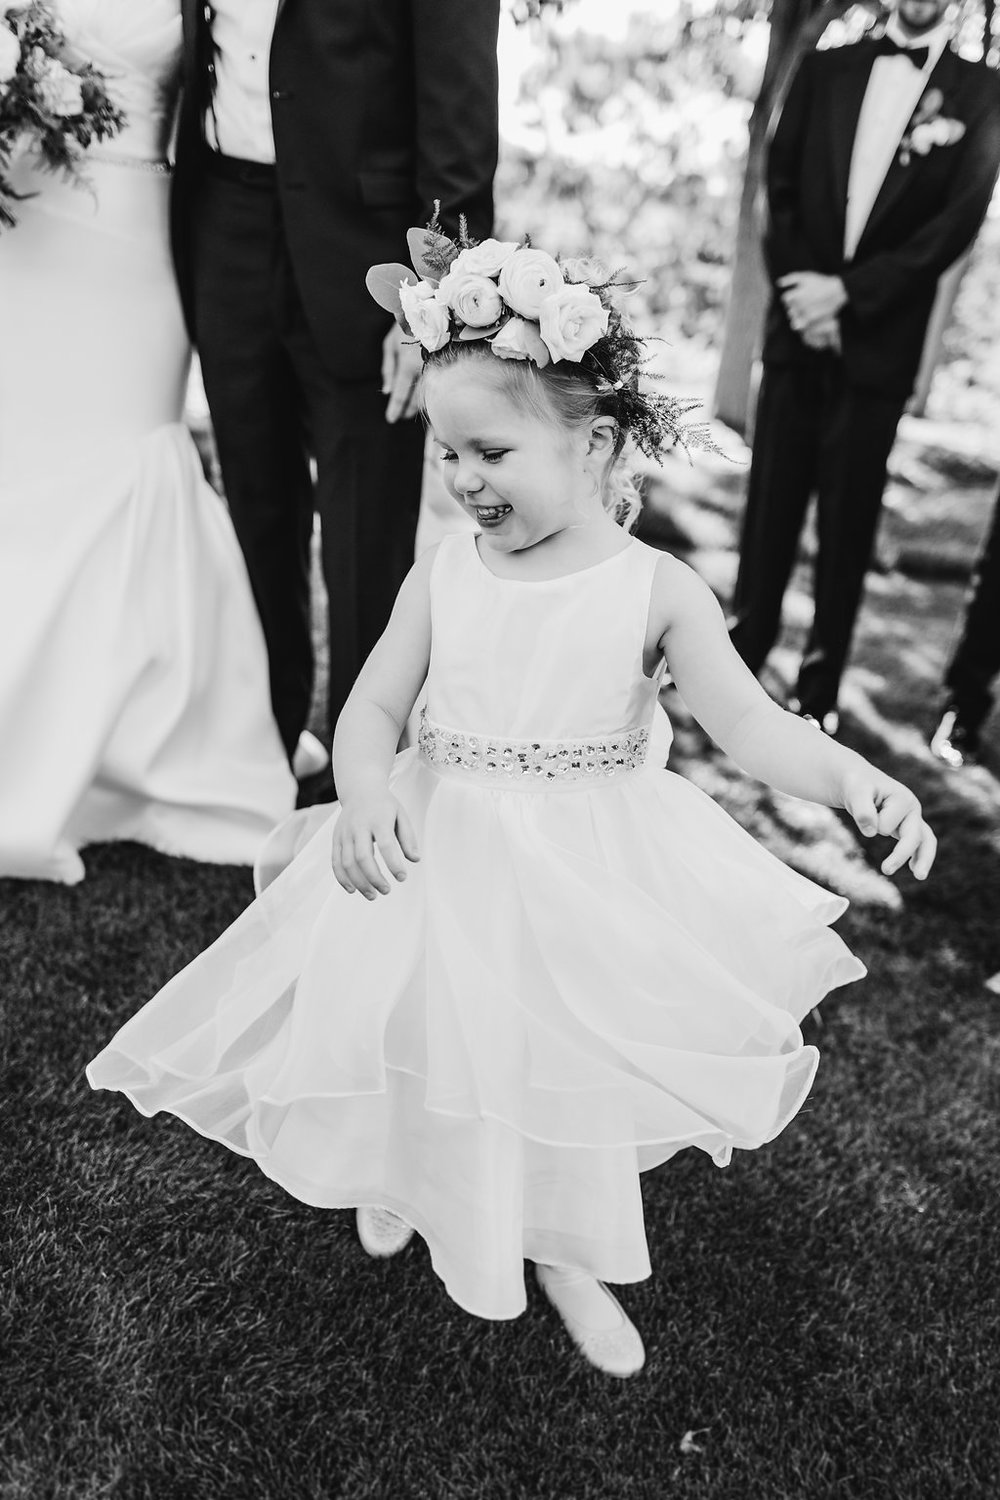 Copy of Ben+MeganWeddingParty-67_b_w.jpg